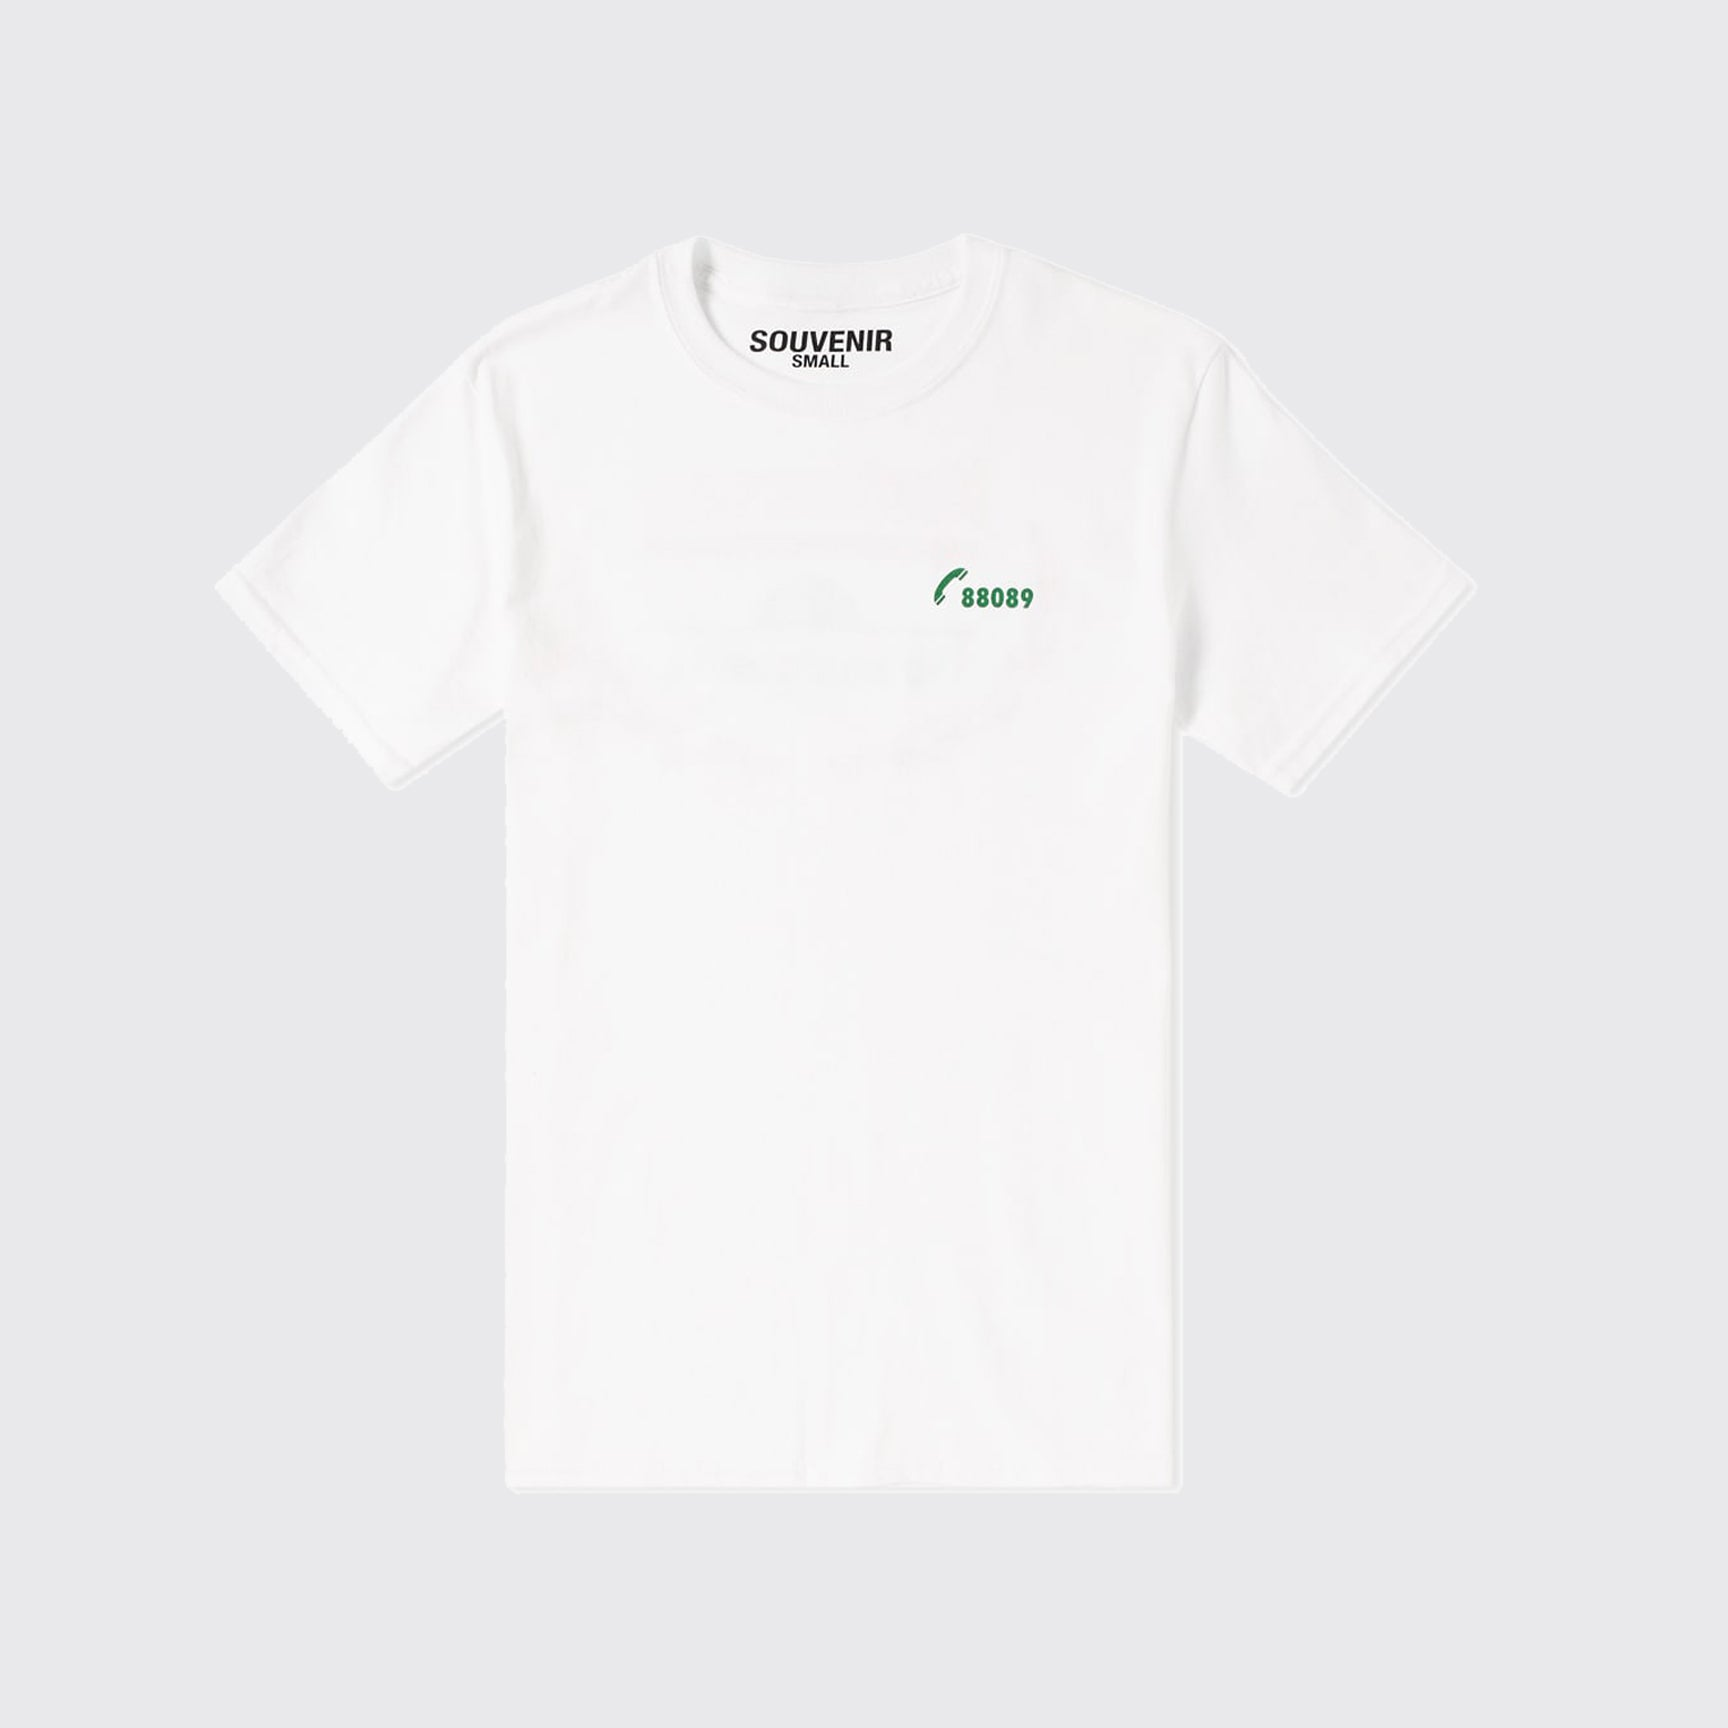 SOUVENIR TEE - WHITE/GREEN